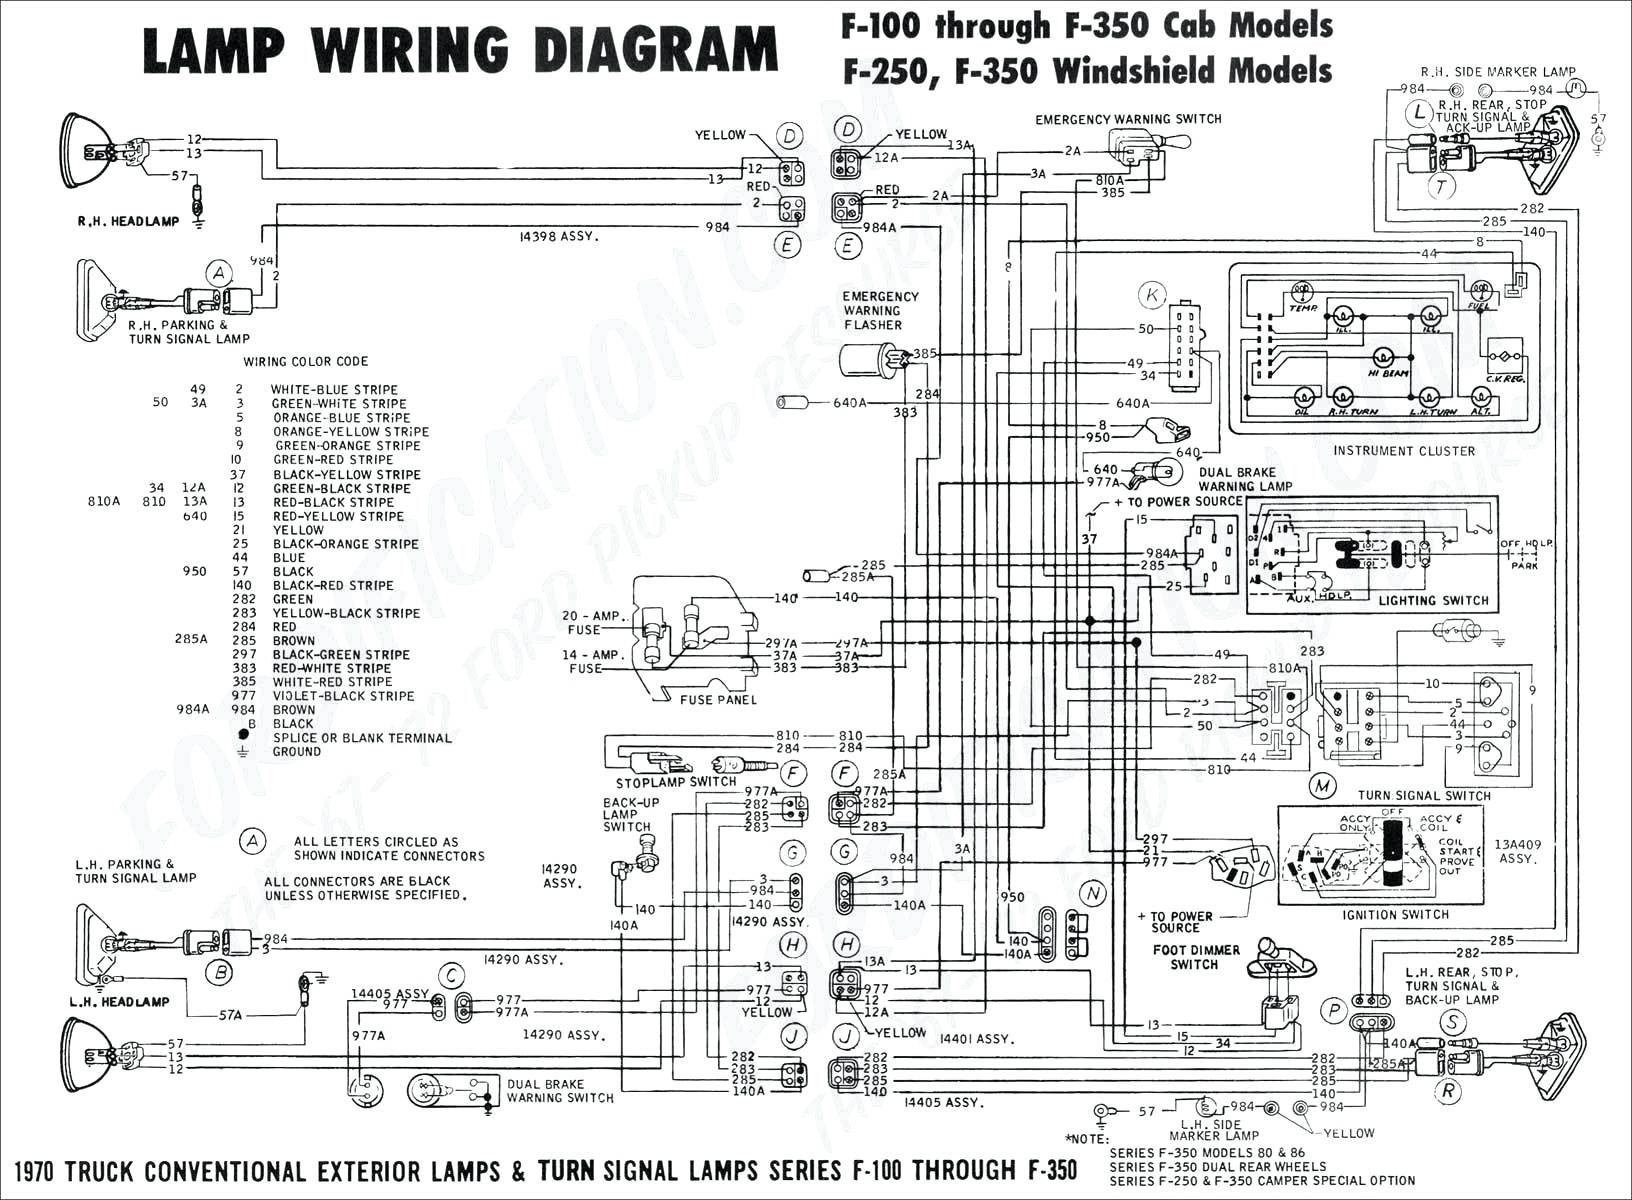 1999 chevy silverado wiring diagram | free wiring diagram 1991 chevy kodiak wiring diagram